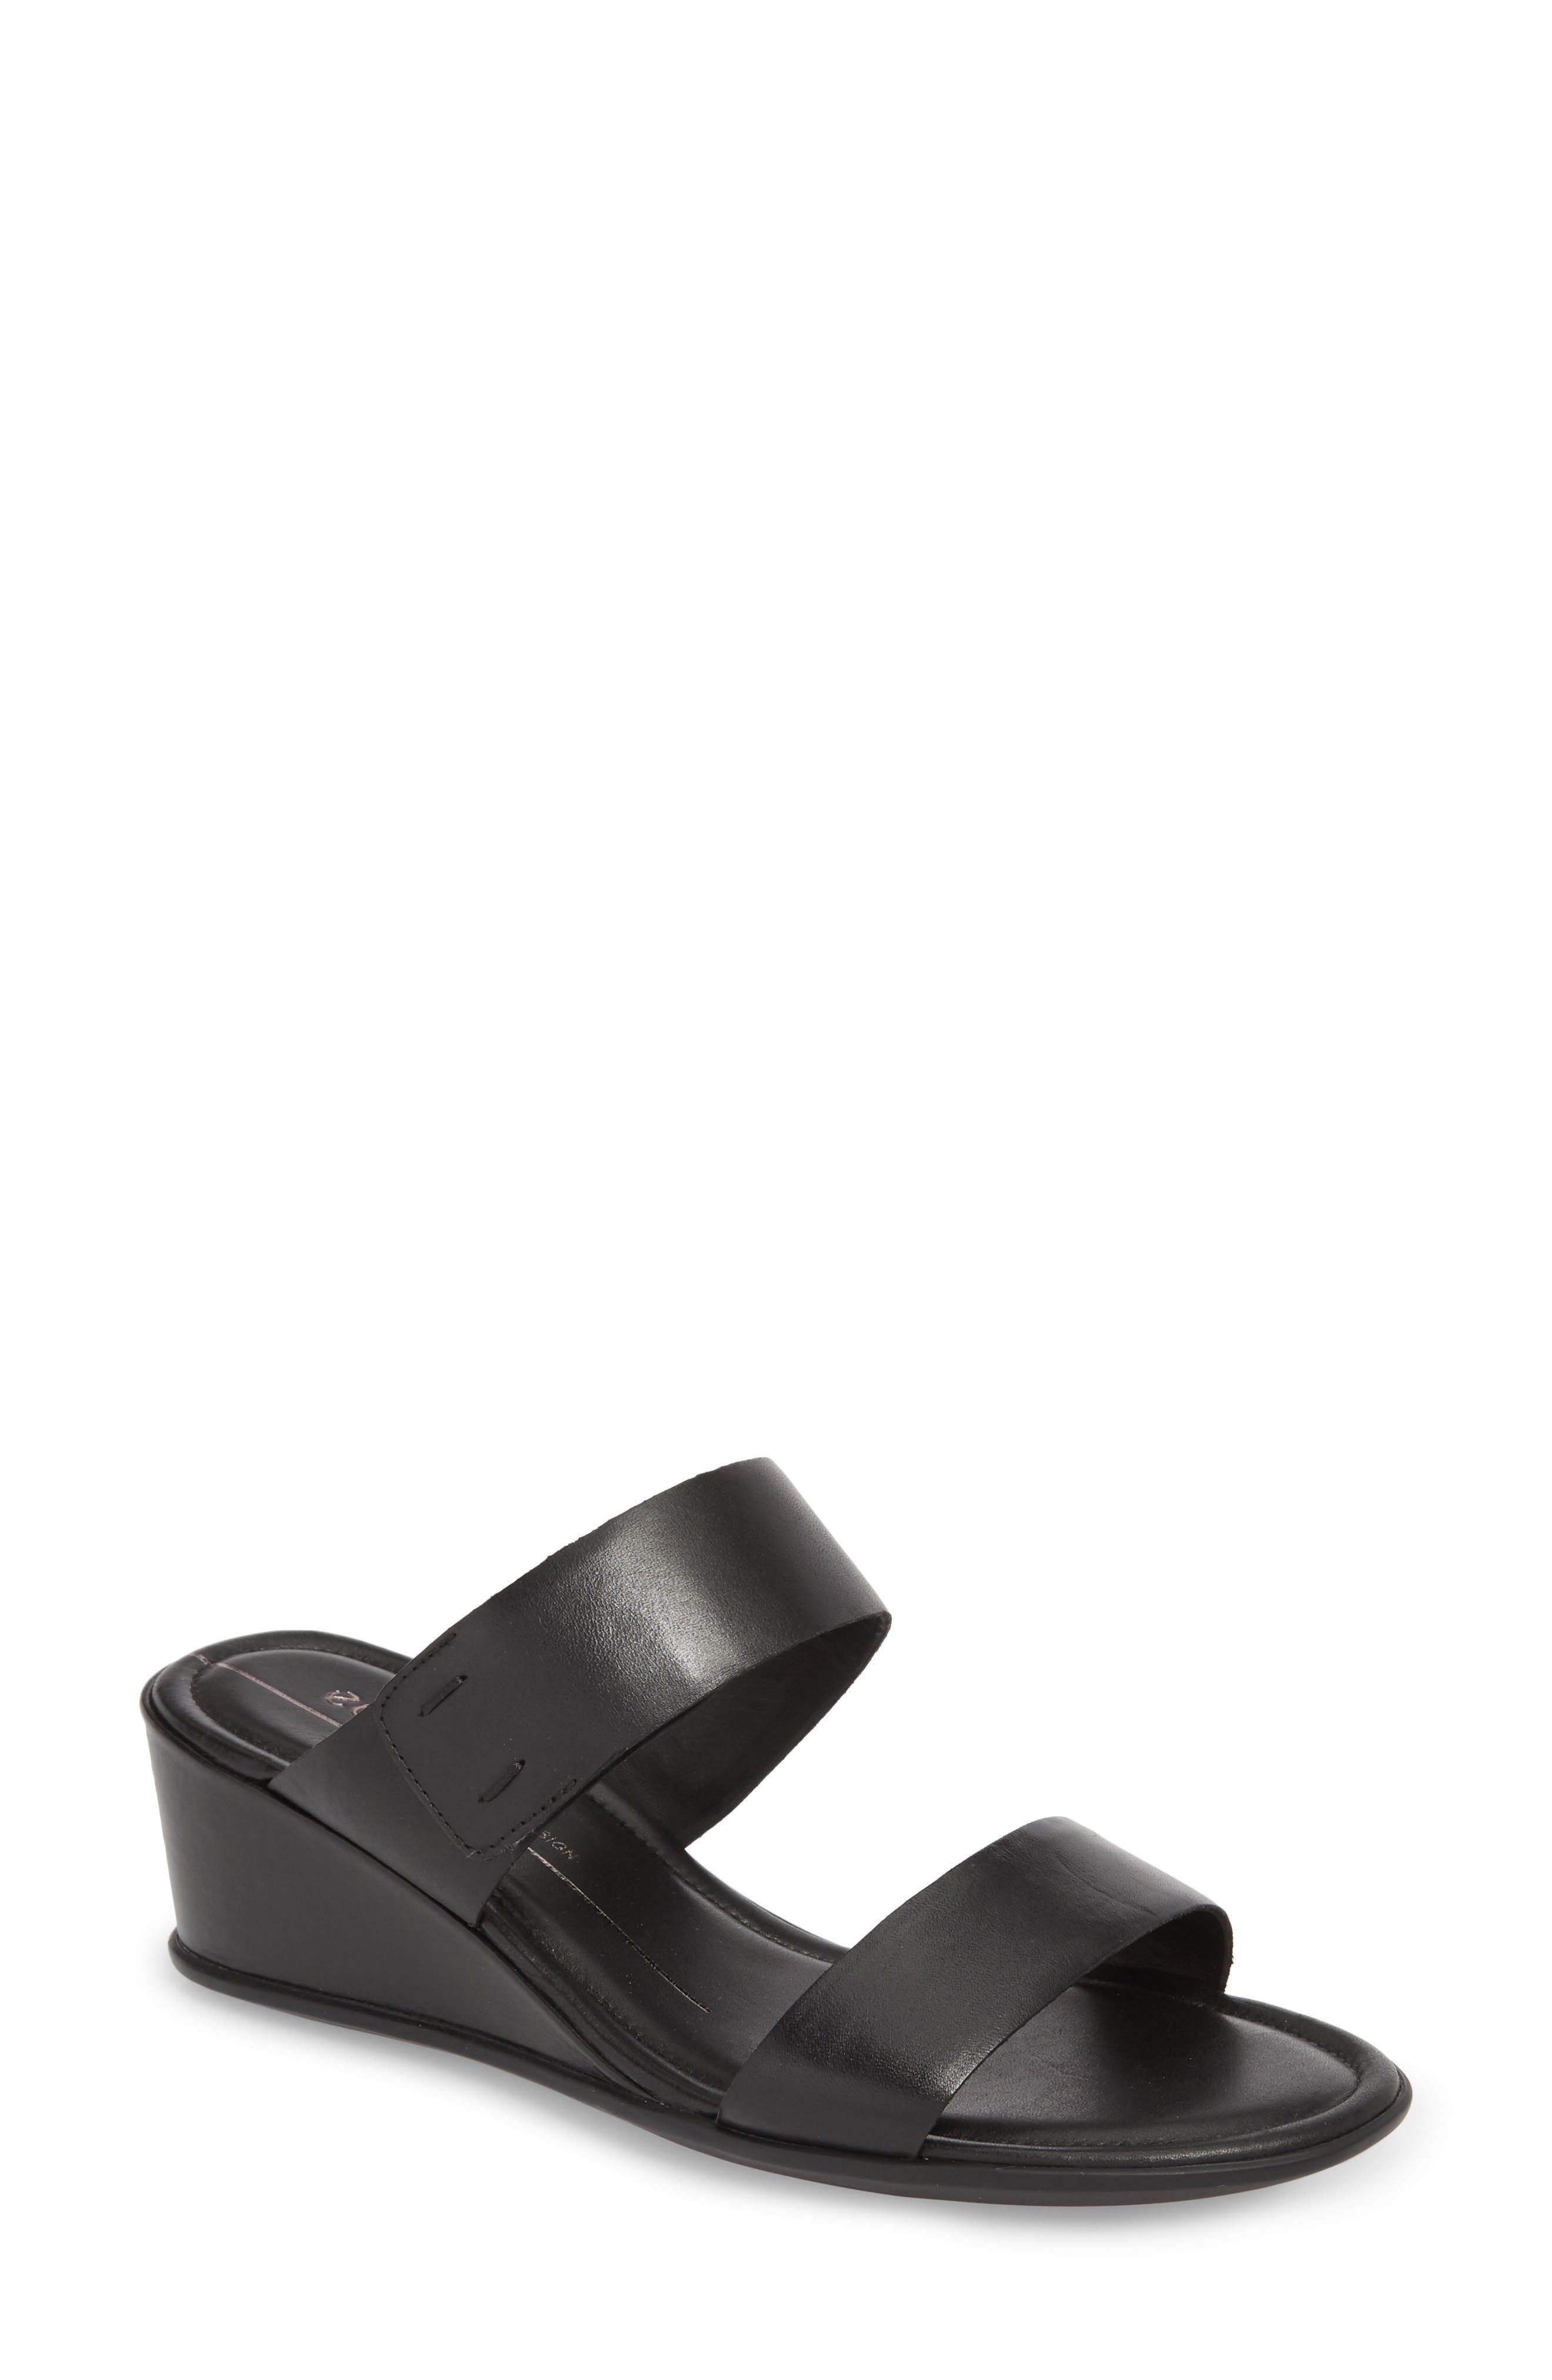 Shape 35 Wedge Sandal,                             Main thumbnail 1, color,                             001